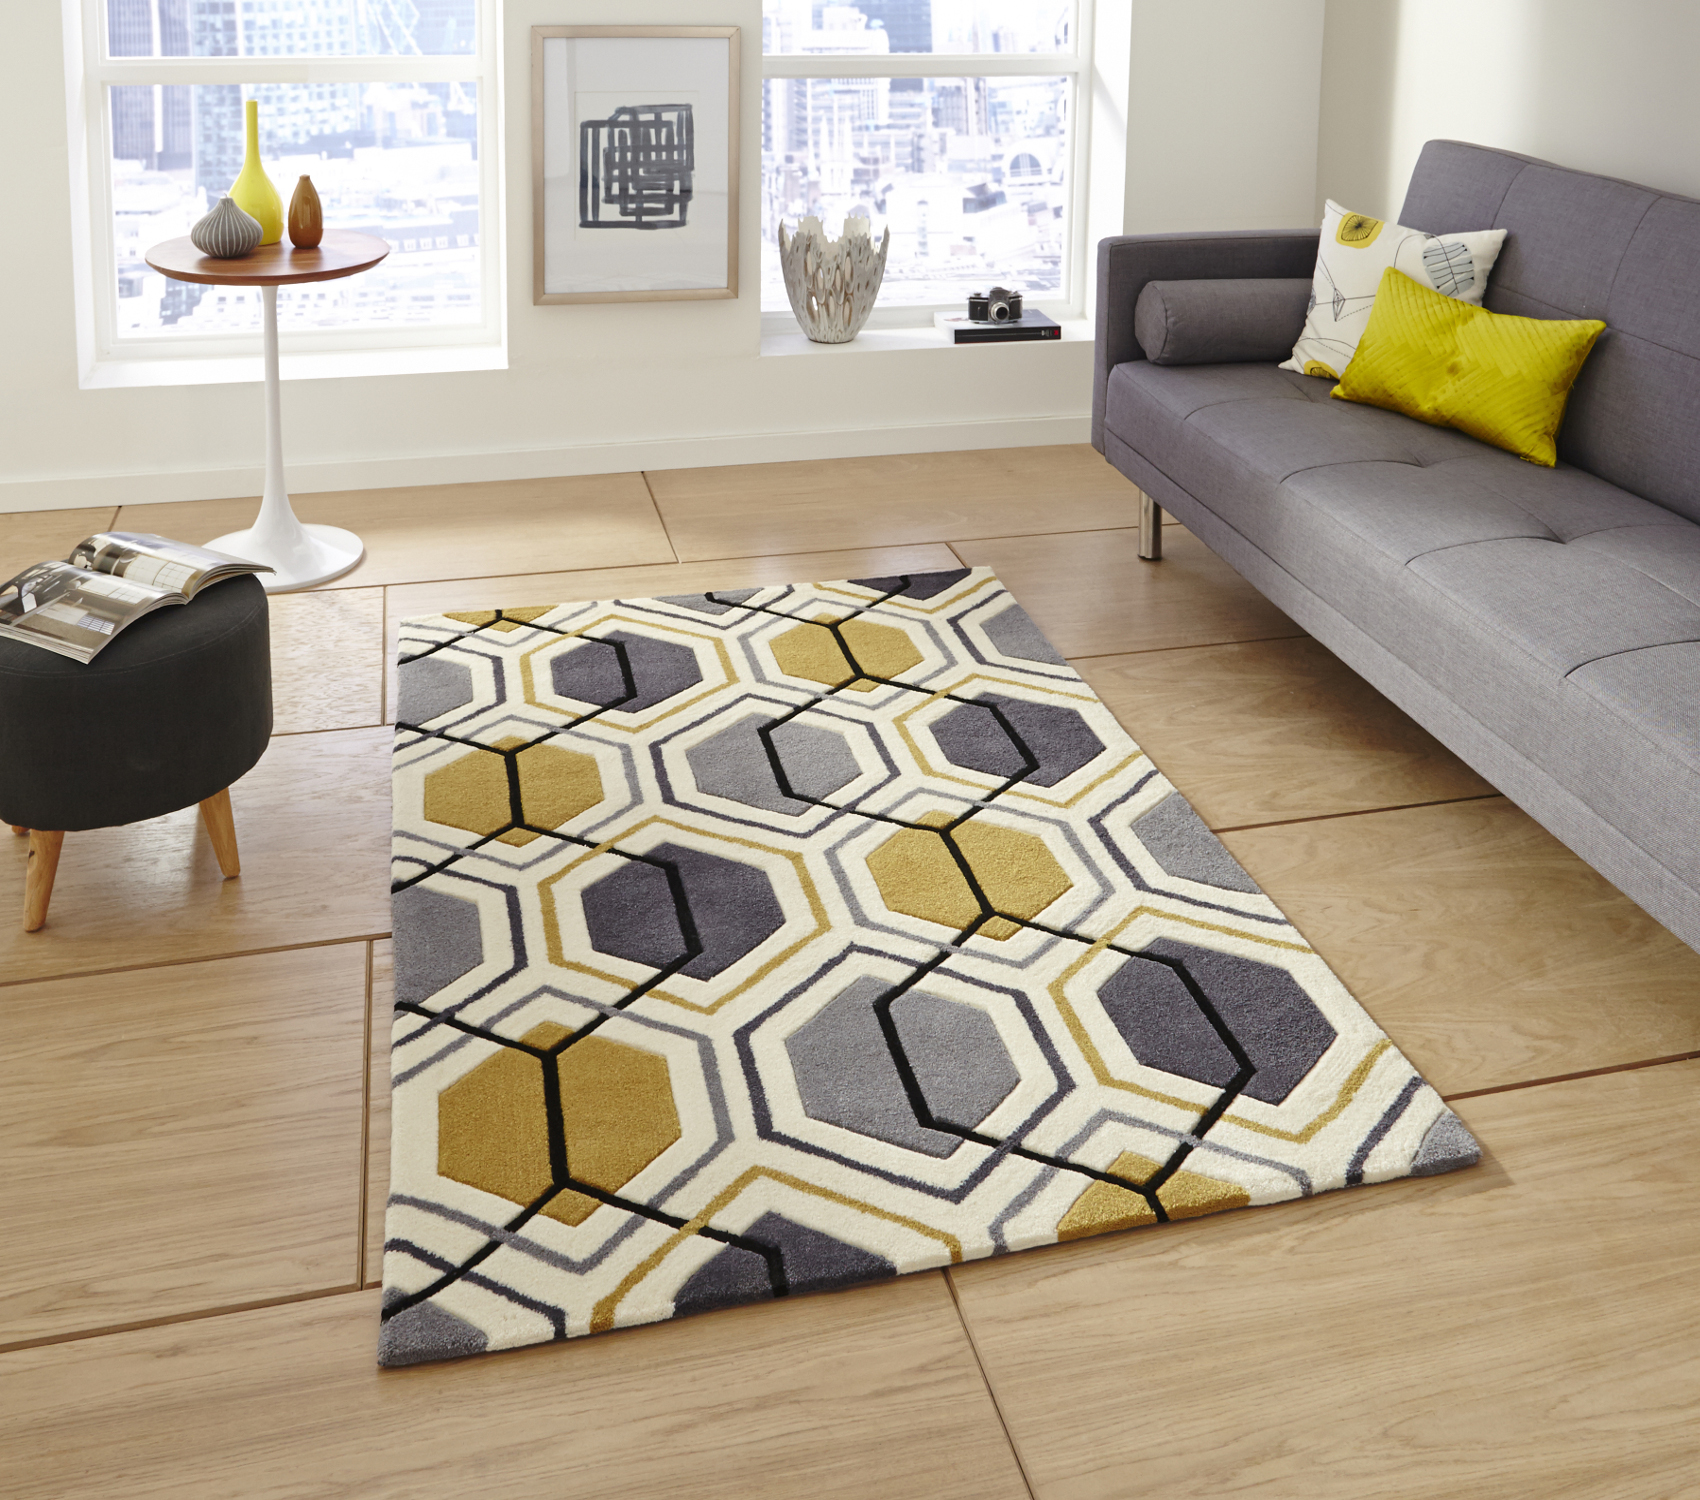 Hong Kong Hexagon Rug 100 Acrylic Hand Tufted Large Geometric Home Decor Mat Ebay